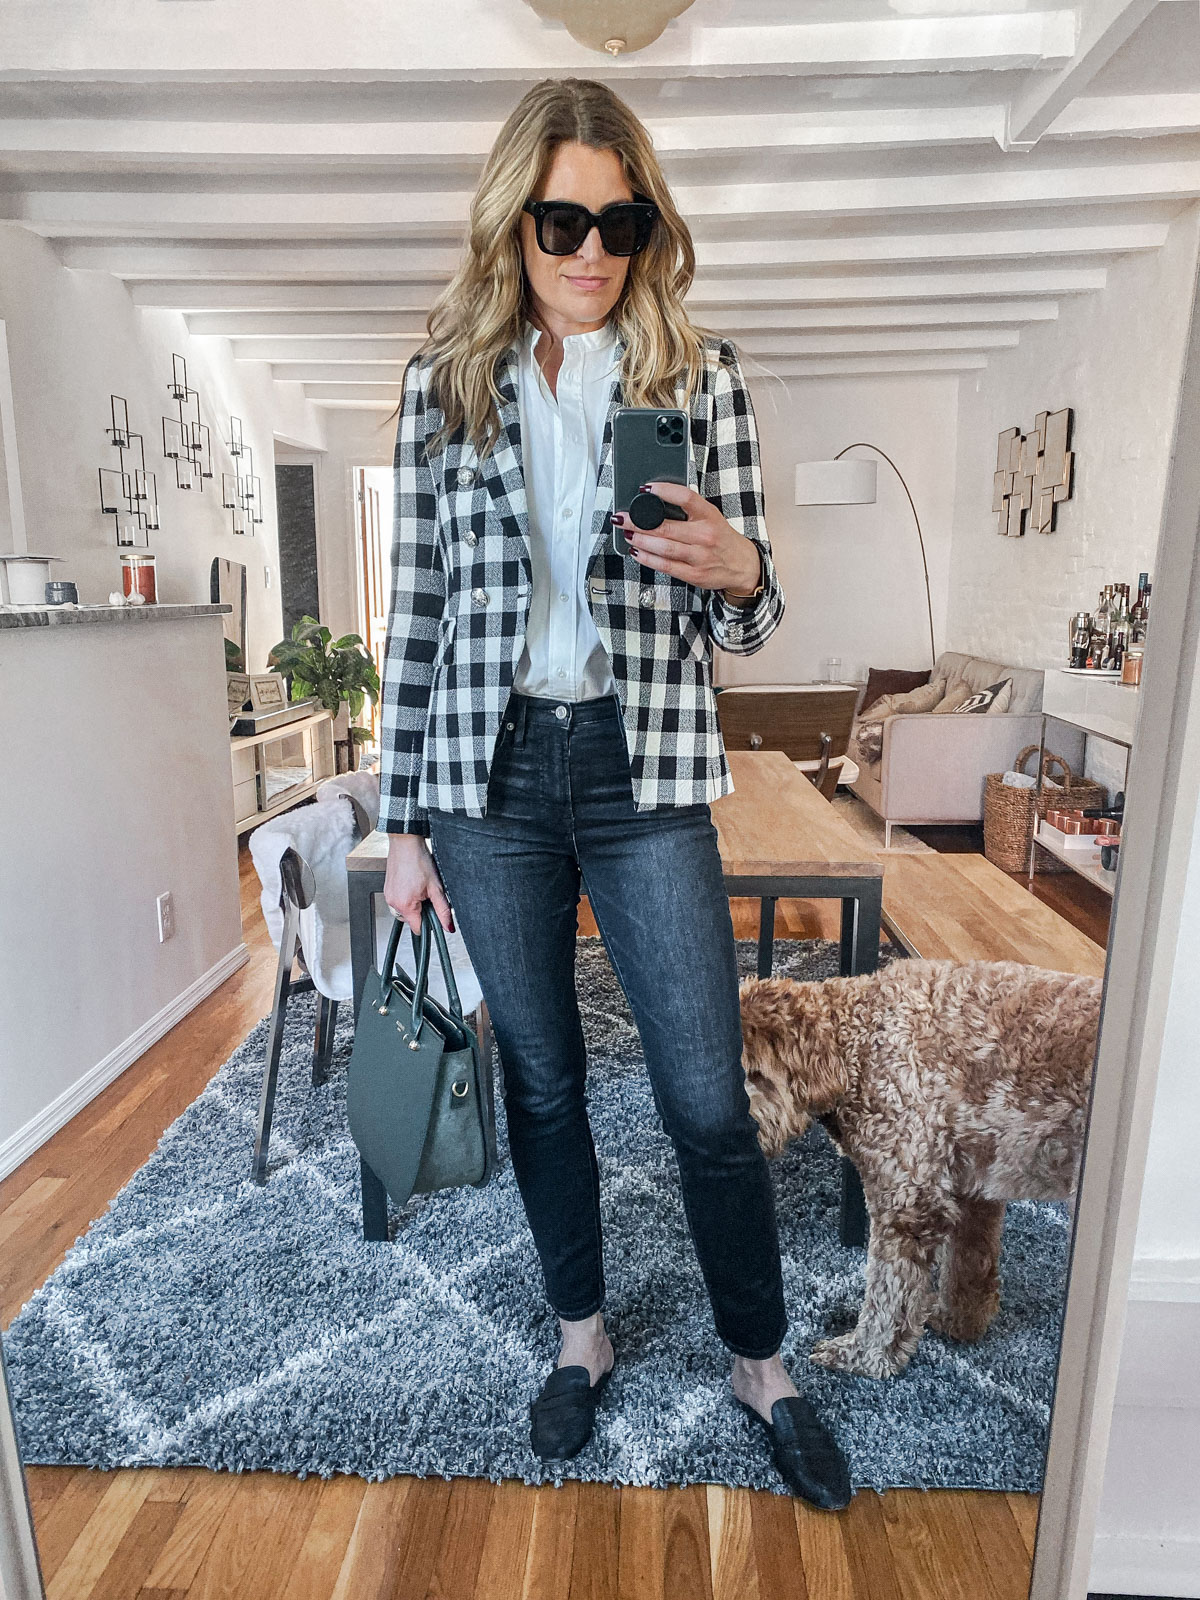 Laura Behnke The Life Actually Company What I Really Wore Veronica Beard Blazer Agolde Jeans